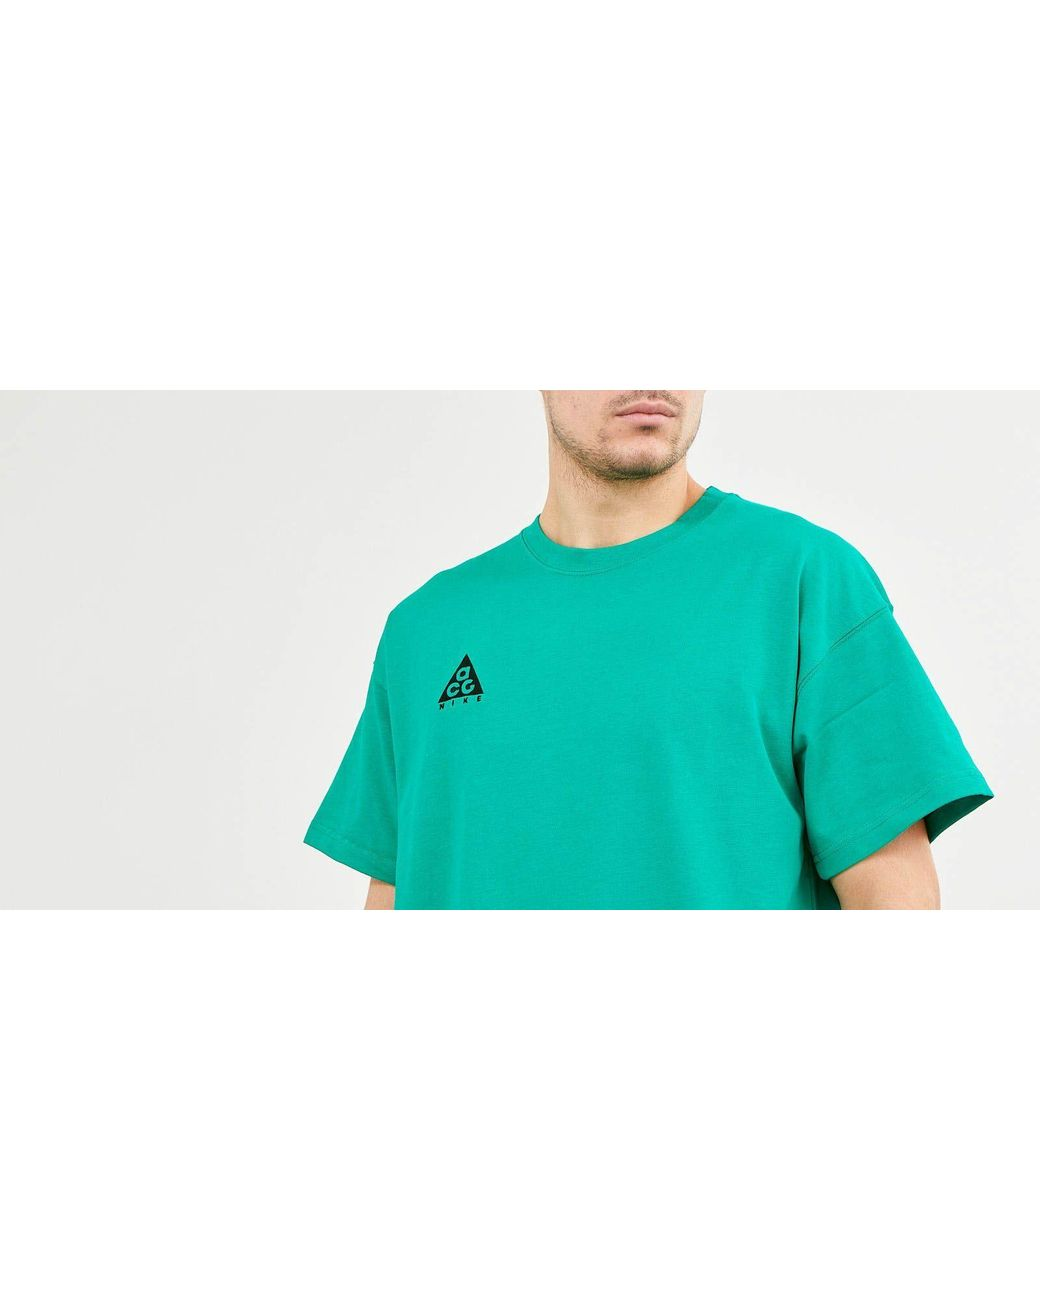 9641702f Nike Acg Logo Tee Nrg Lucid Green/ Black in Green for Men - Lyst